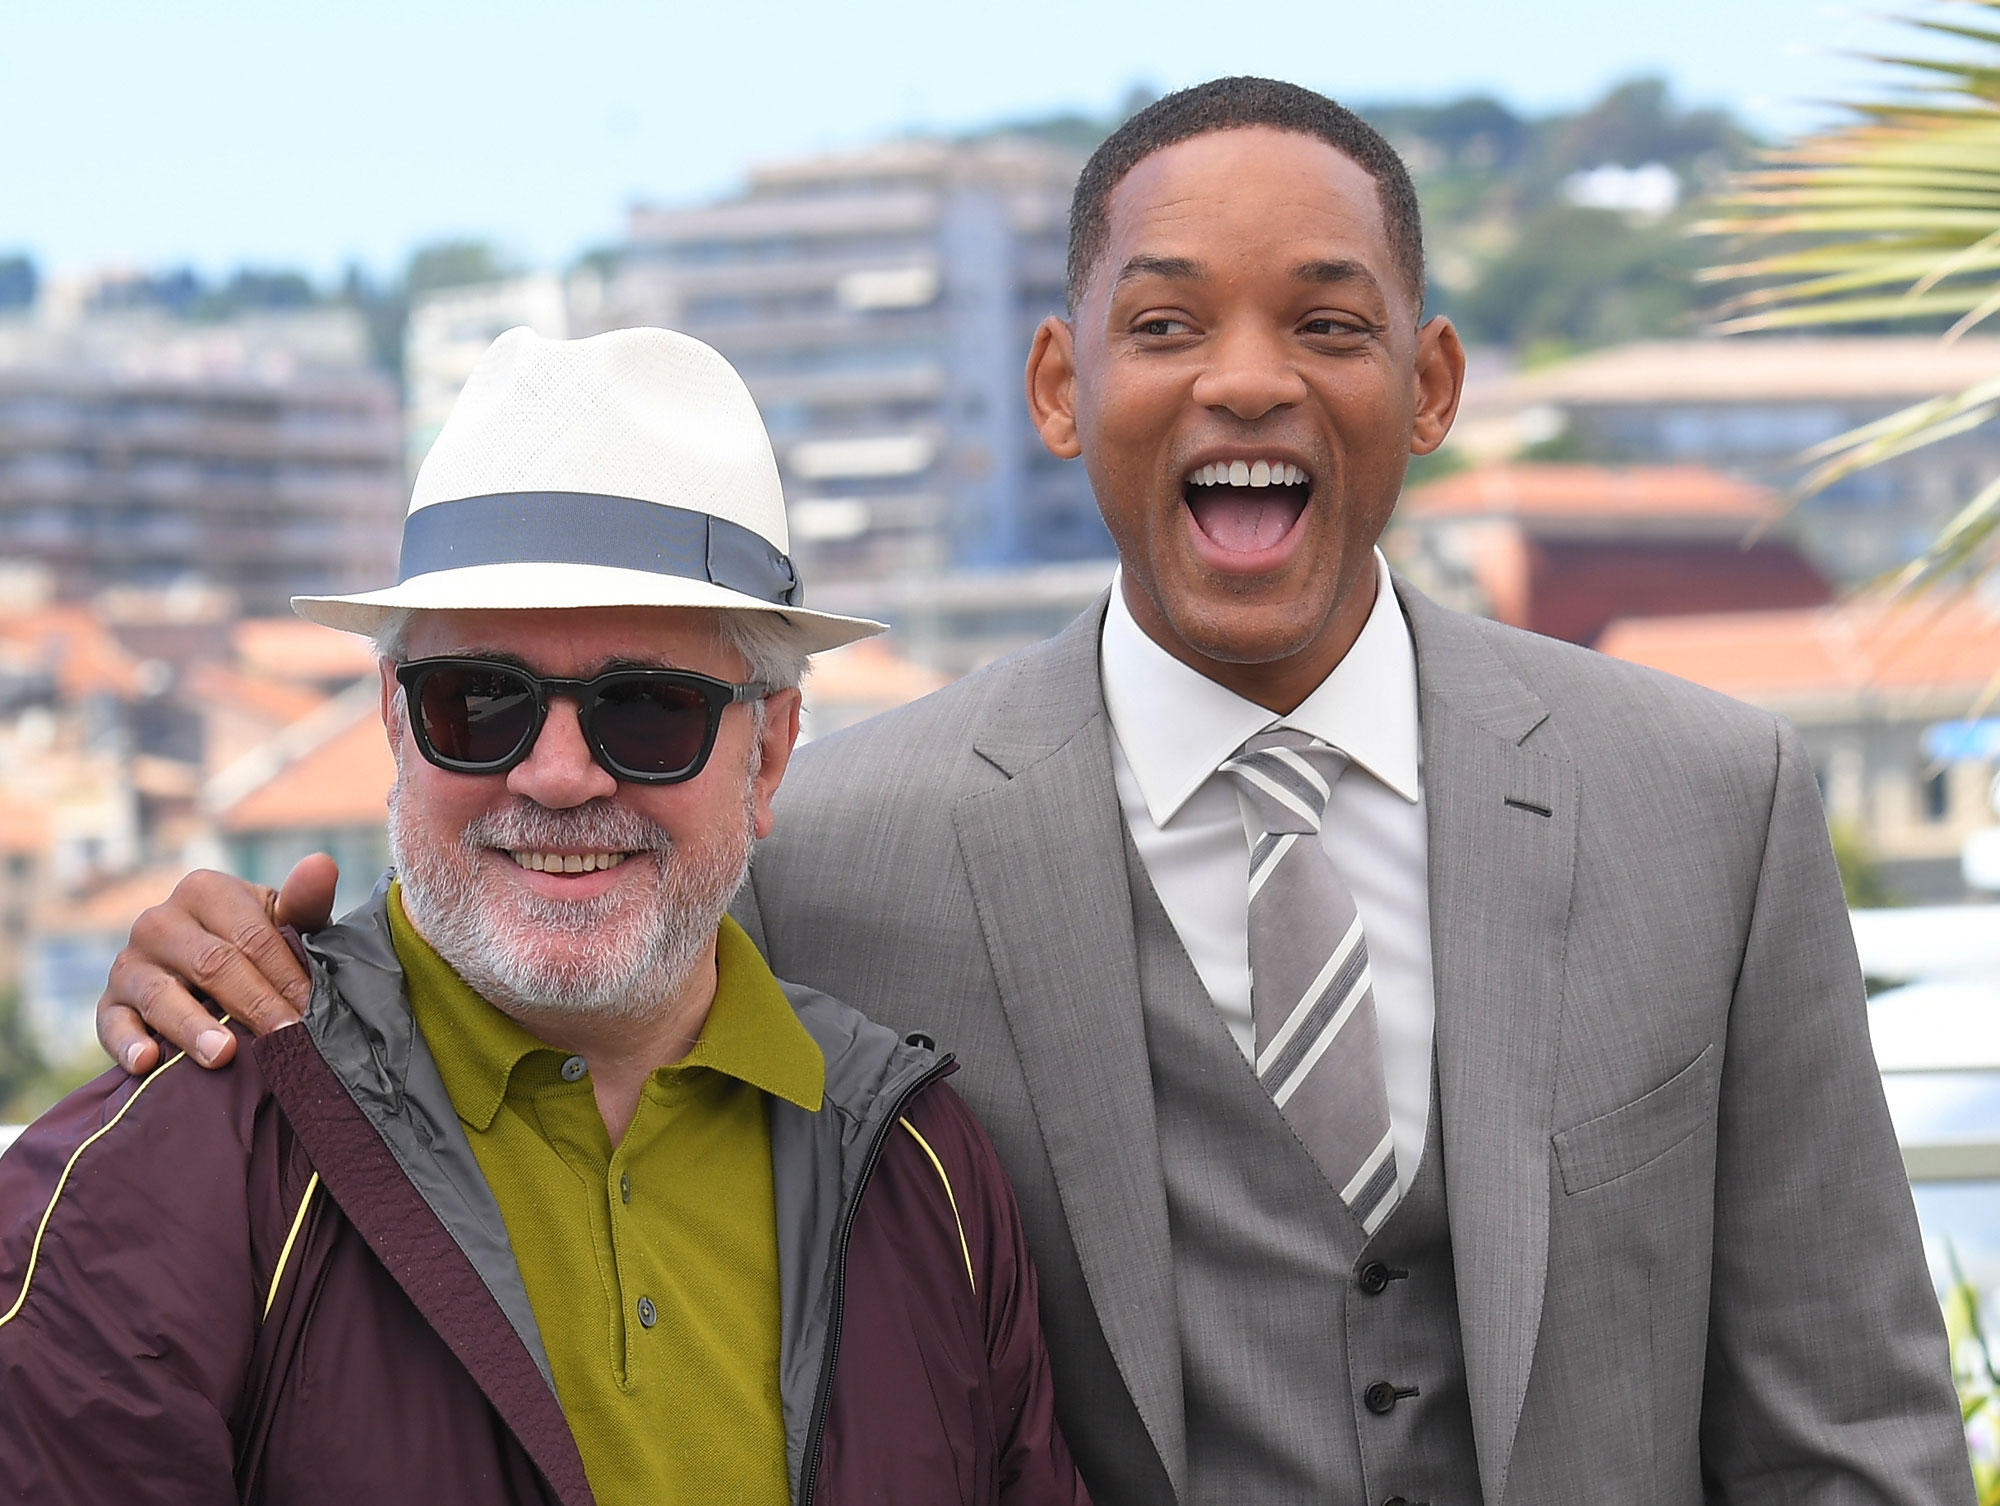 Pedro Almodovar et Will Smith au Festival de Cannes.